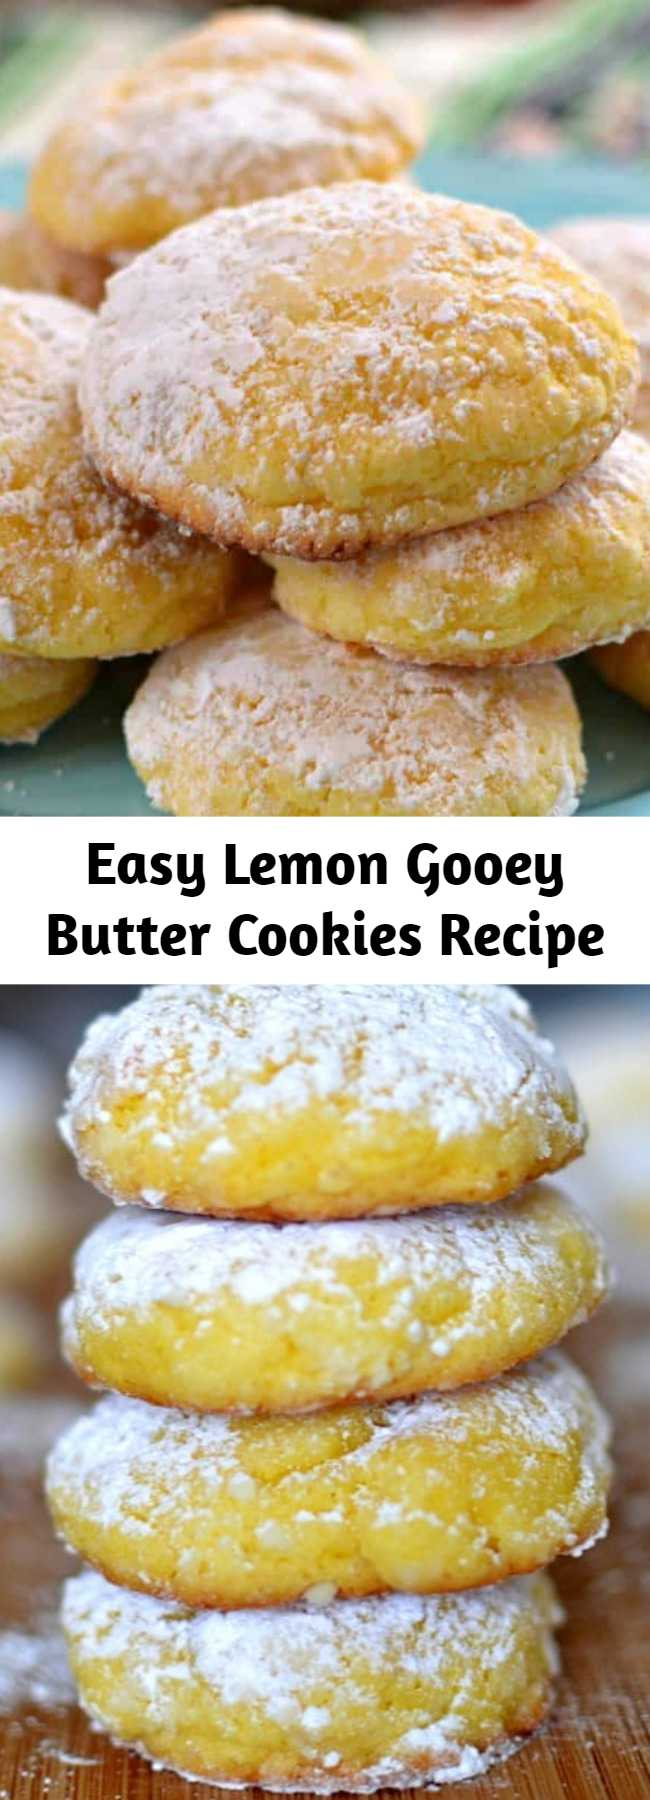 Easy Lemon Gooey Butter Cookies Recipe - An easy gooey lemon cake box cookie with just seven ingredients. Make a whole batch of cookies in less than 30 minutes. These will melt in your mouth!